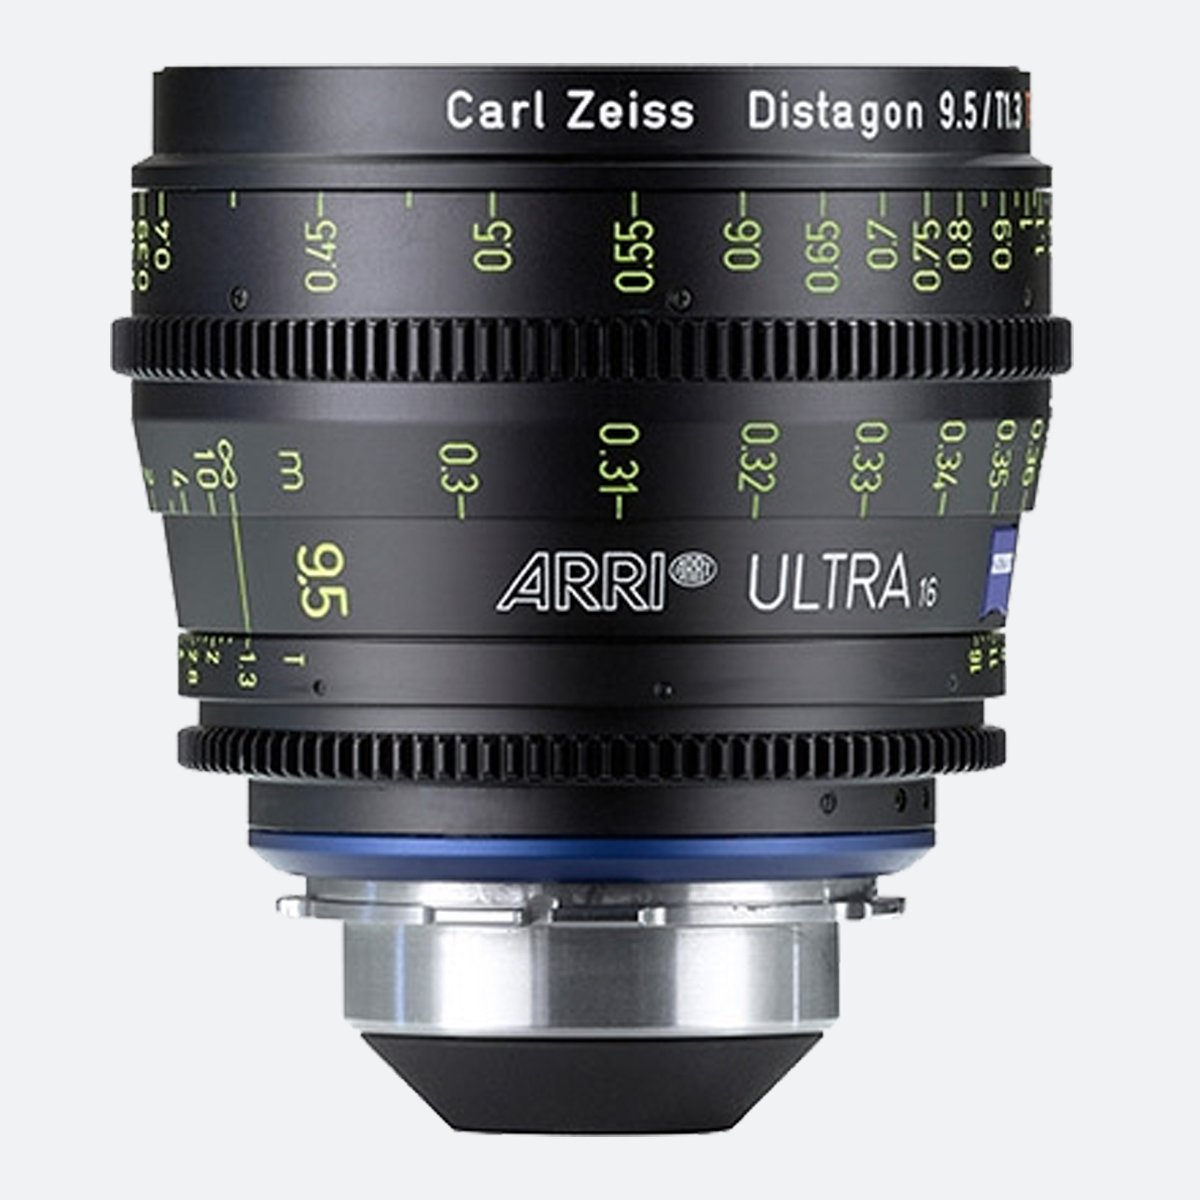 ARRI Ultra 16 T1.3 / 9.5 mm Wide Lens